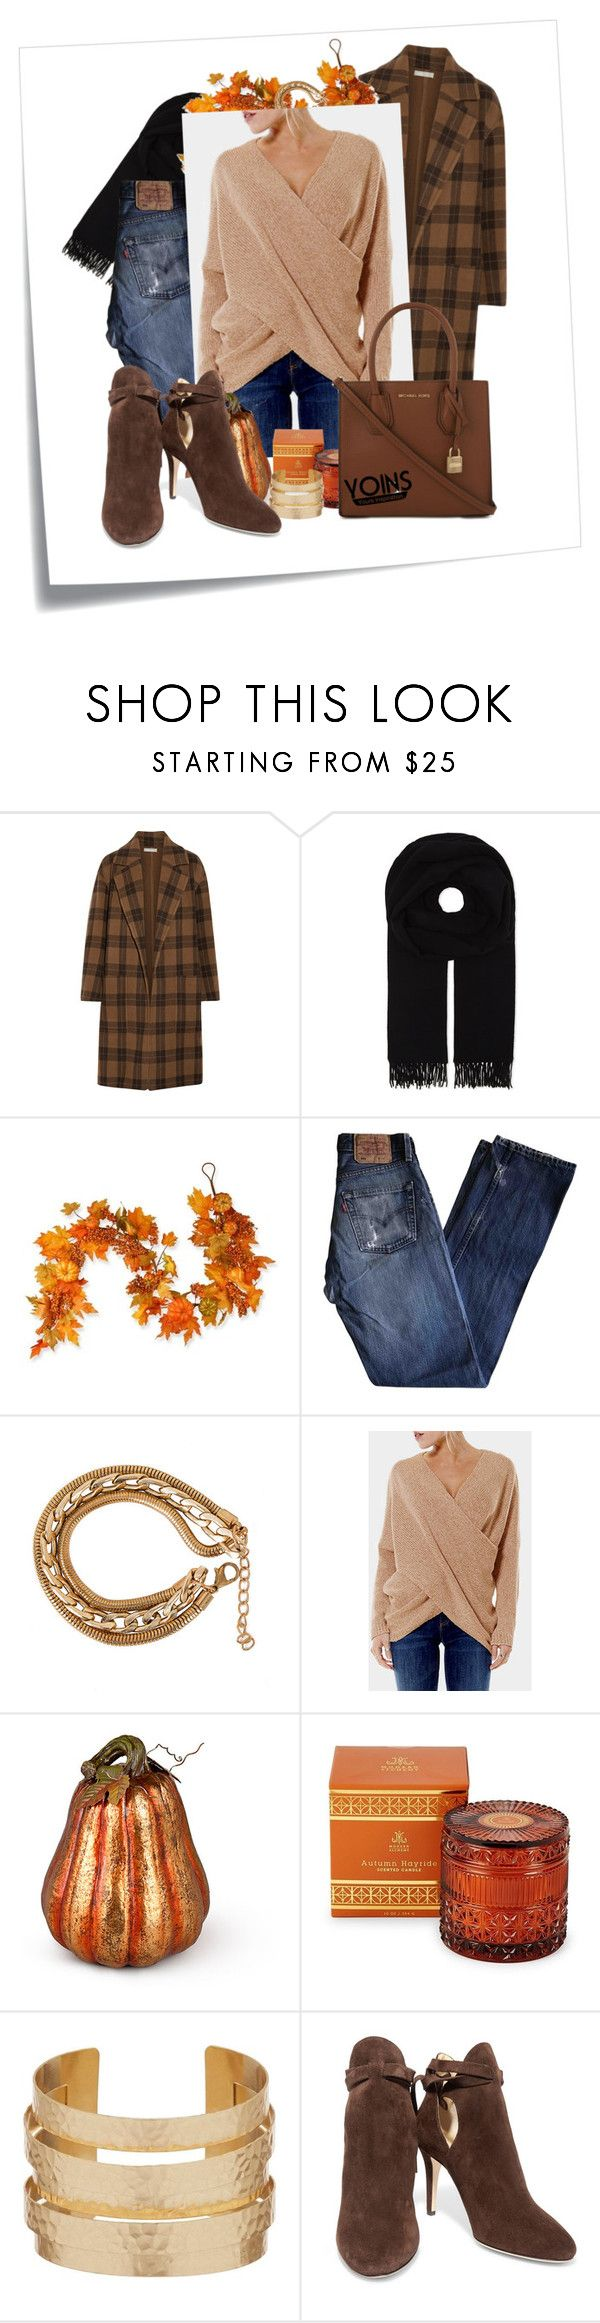 """[24/31] Heavy"" by decimaollin ❤ liked on Polyvore featuring Post-It, Vince, Canada Goose, National Tree Company, Levi's, Improvements, D.L. & Co., Jimmy Choo and MICHAEL Michael Kors"